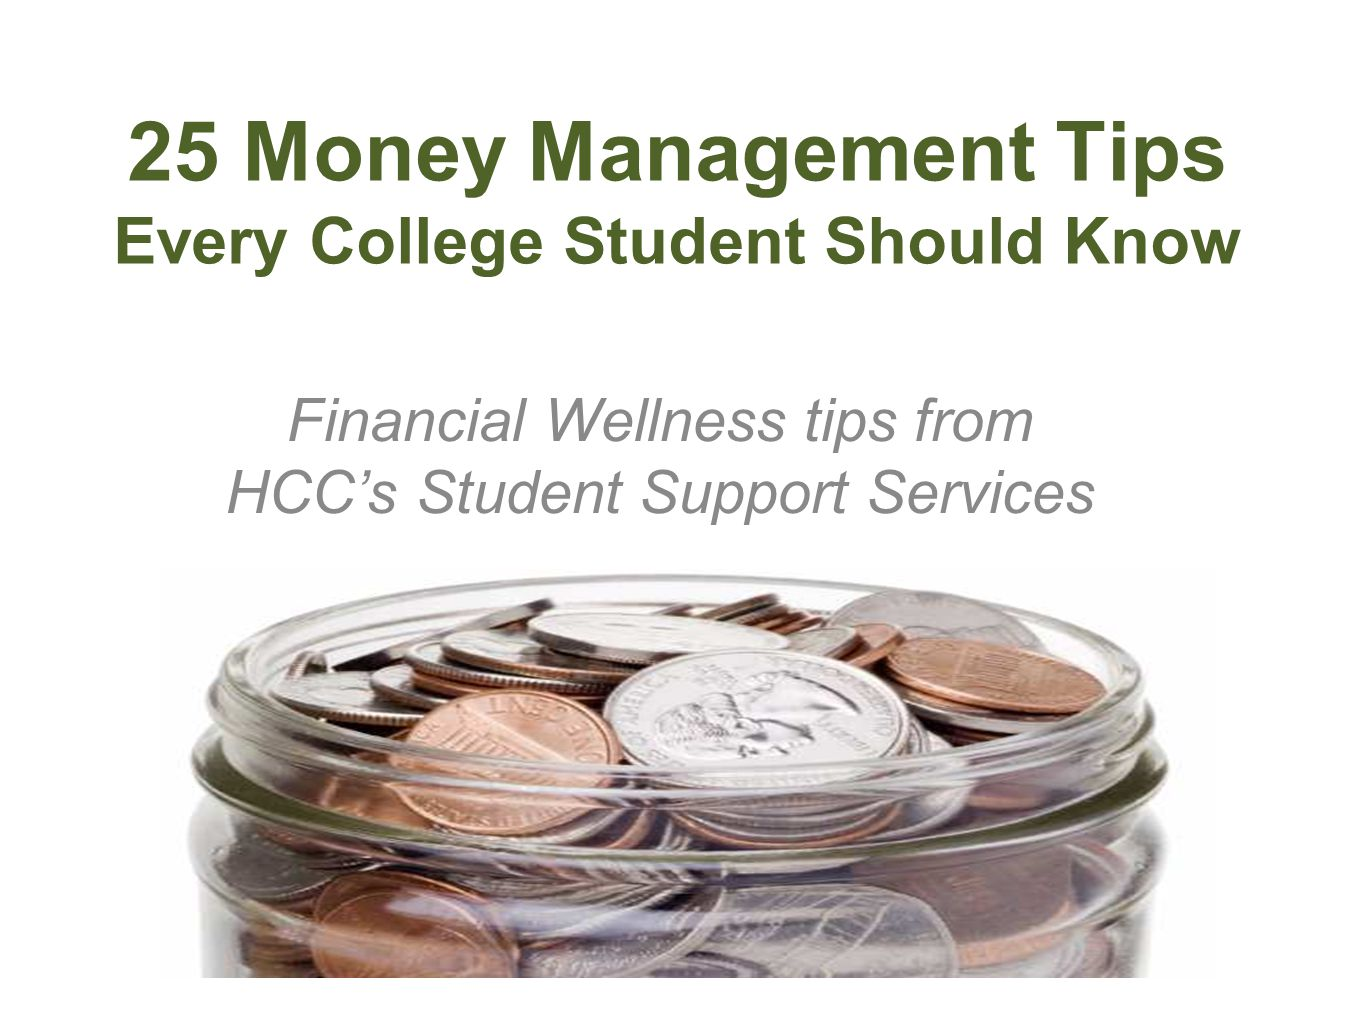 25 Money Management Tips Every College Student Should Know Financial Wellness tips from HCCs Student Support Services